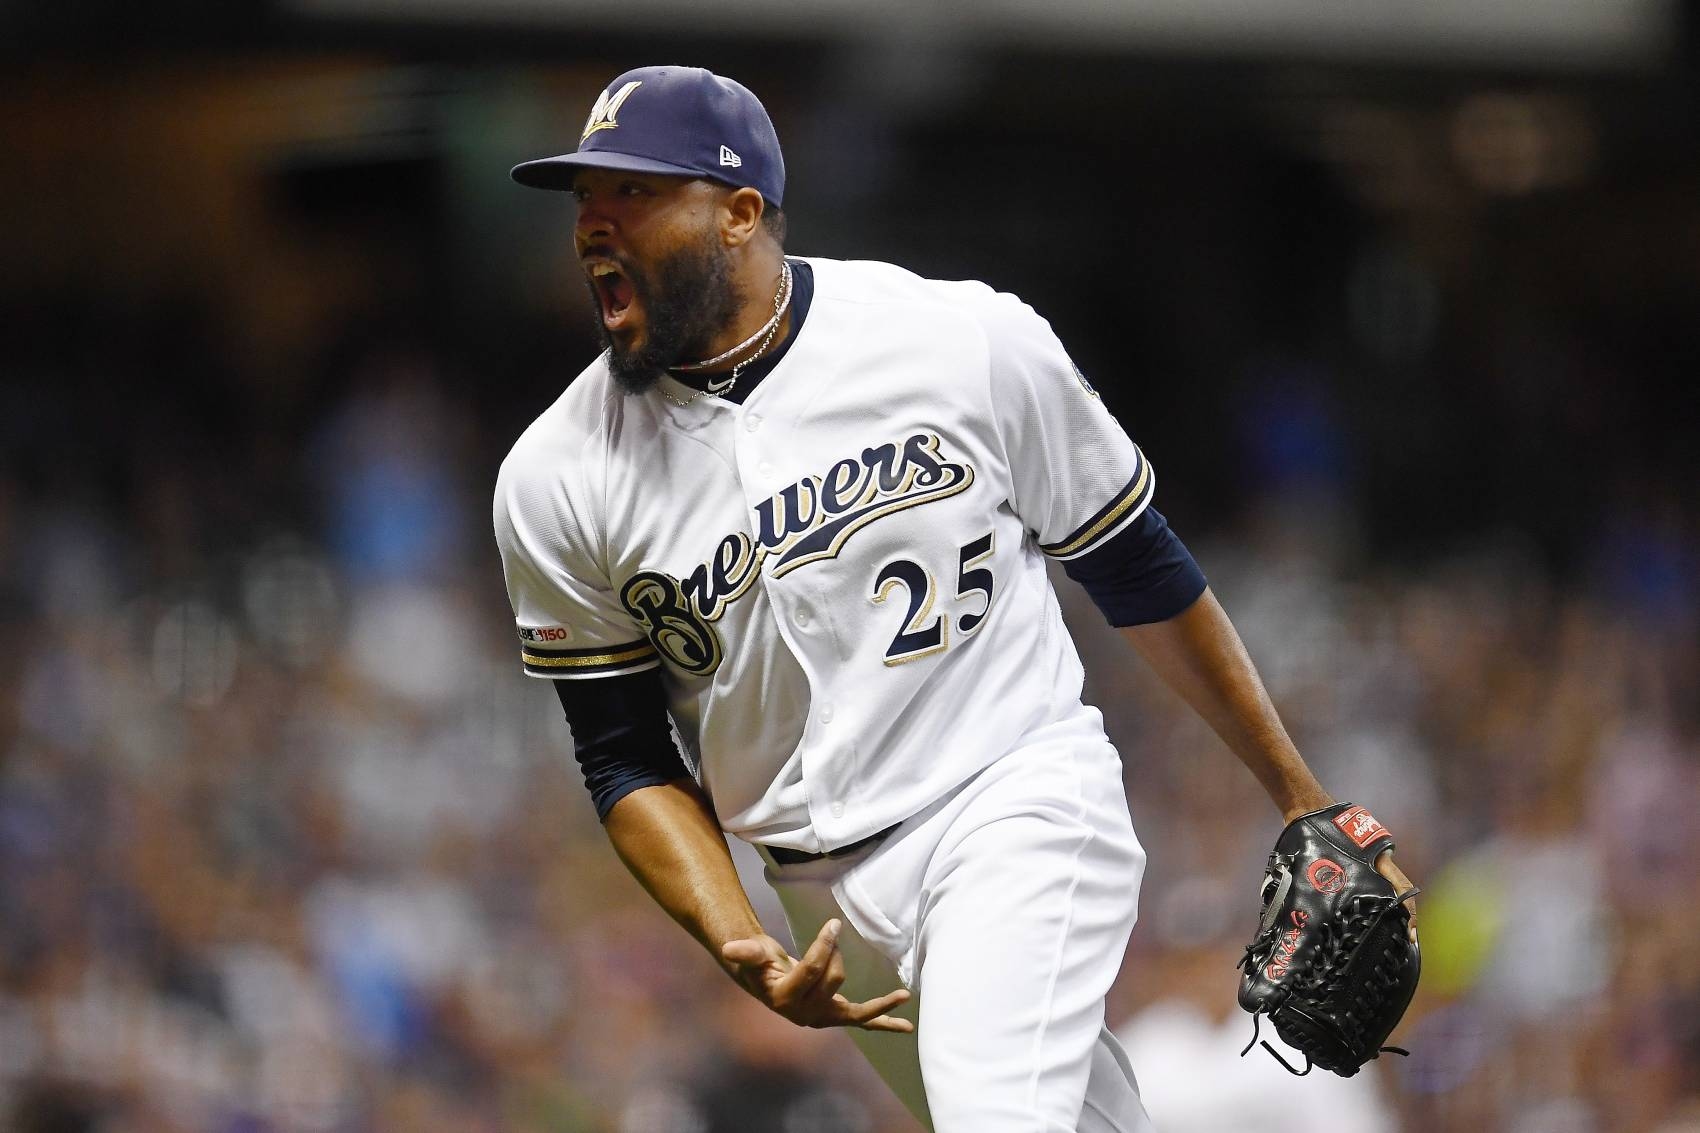 Ex-Brewers Pitcher Jay Jackson's Ugly Child Custody Fight Just Got Worse